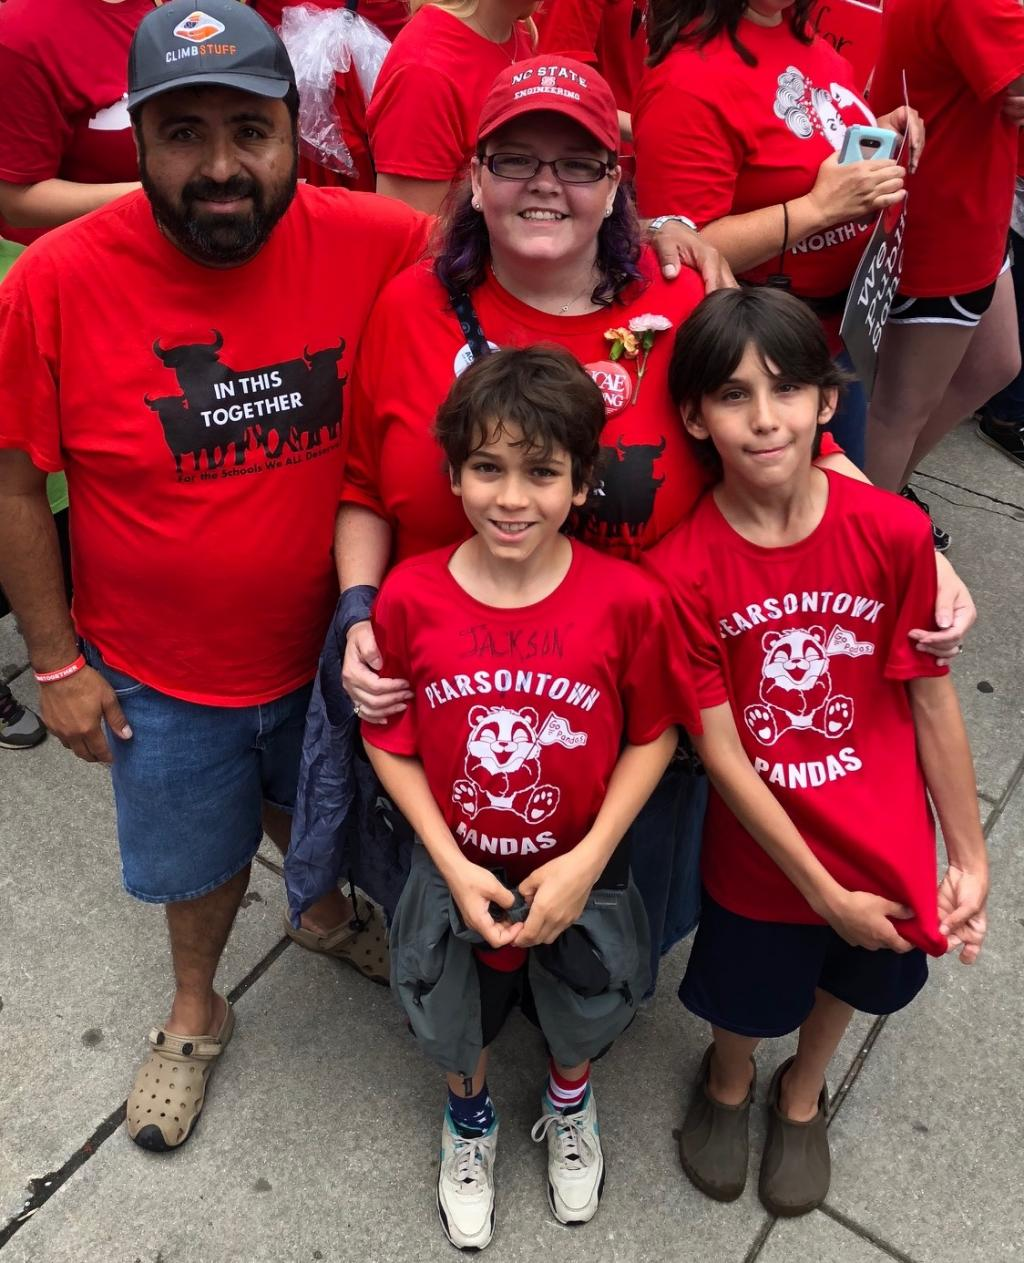 [IMAGE DESCRIPTION: A family of two adults, one with a beard, and two children, both with short dark hair, all wearing red shirts and smiles.]